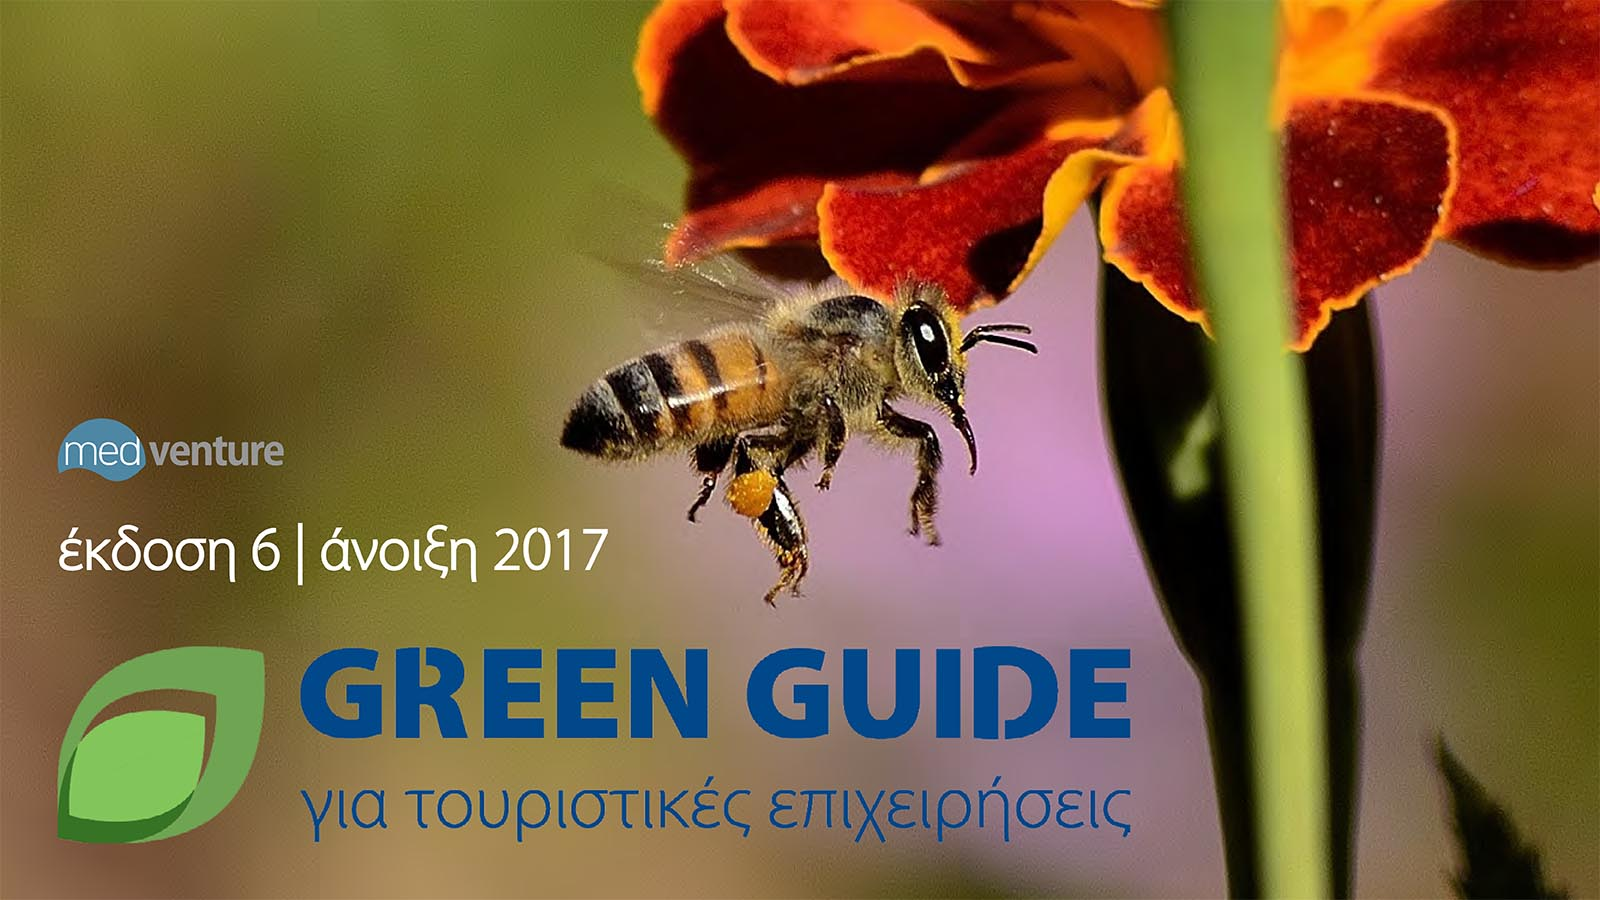 Green Guide Issue 6